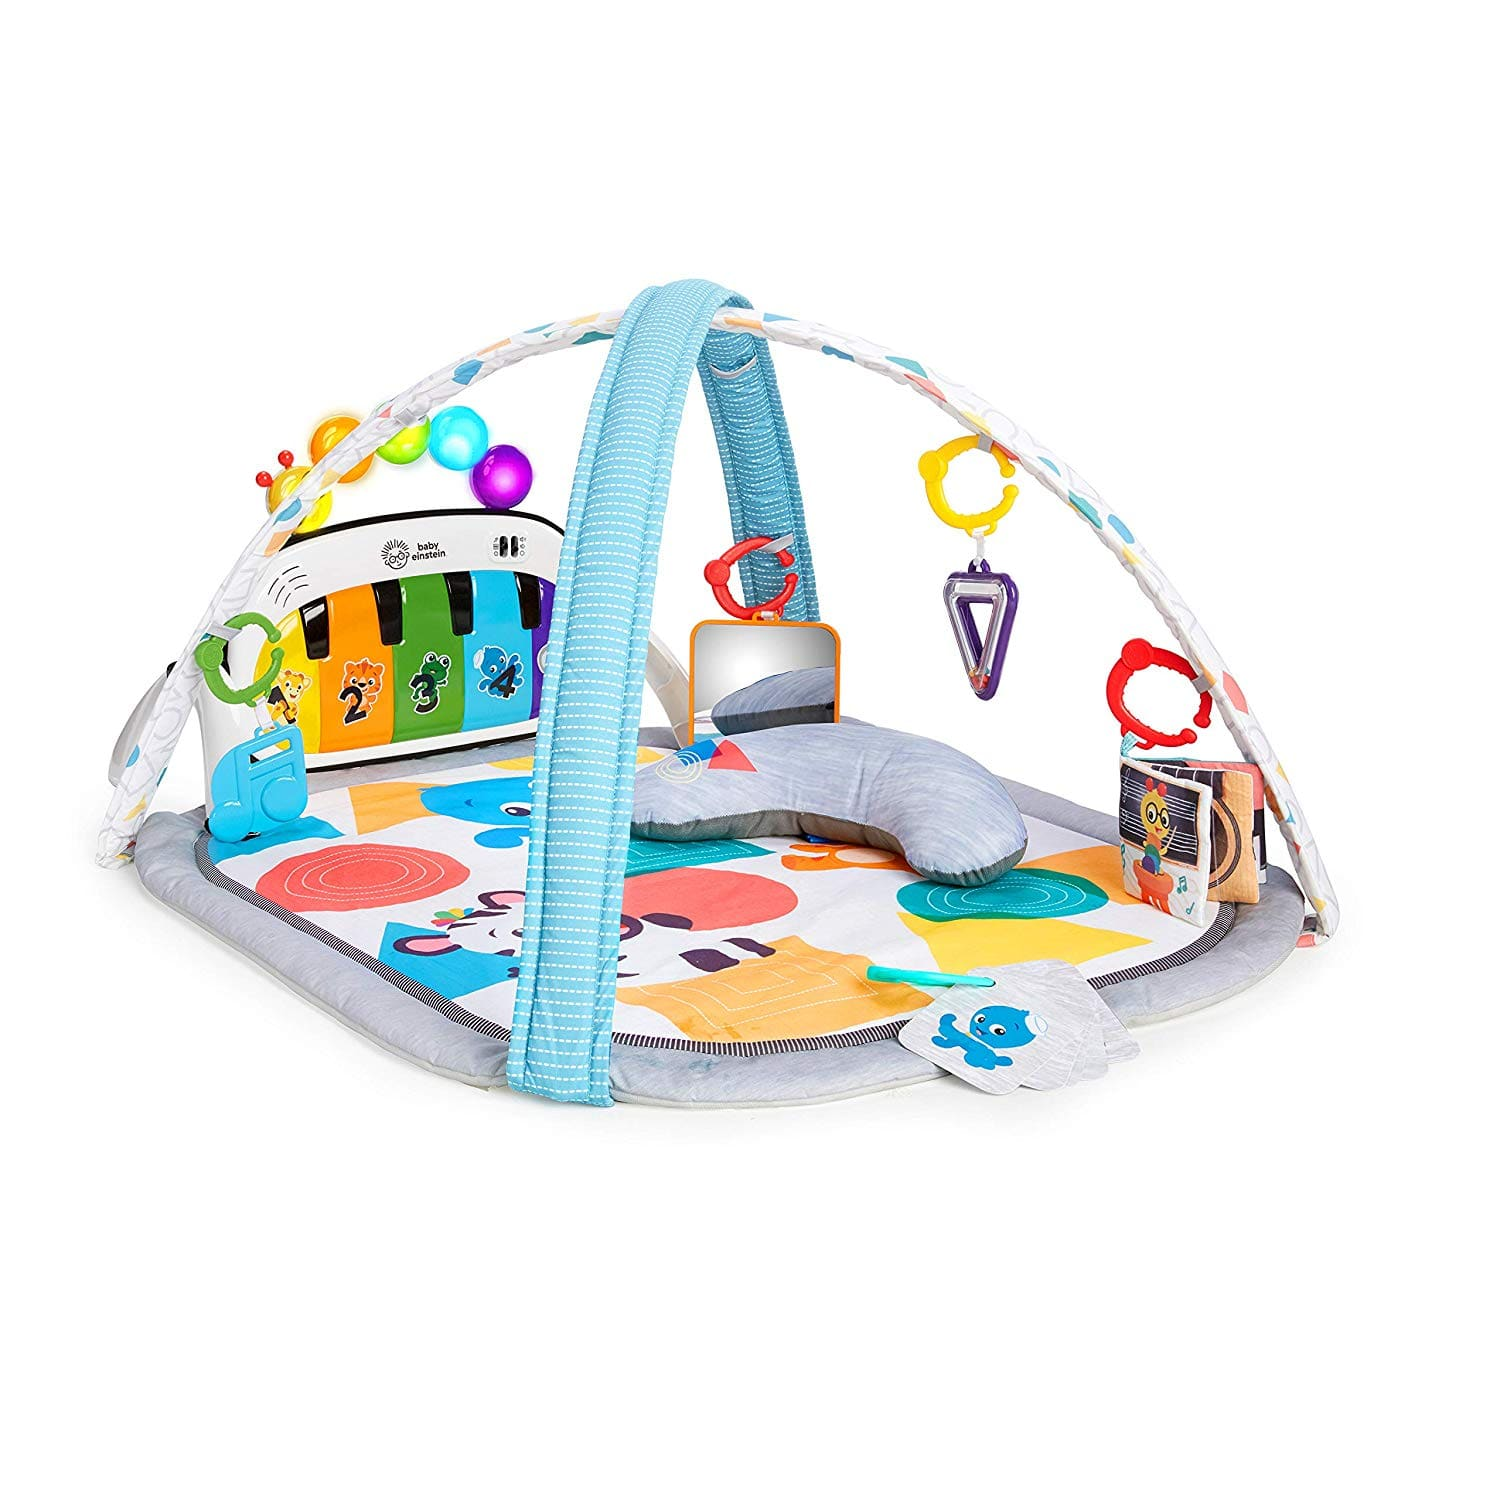 Baby Einstein 4-in-1 Kickin' Tunes Music and Language Discovery Activity Play Gym $29.74 FS w/ Prime